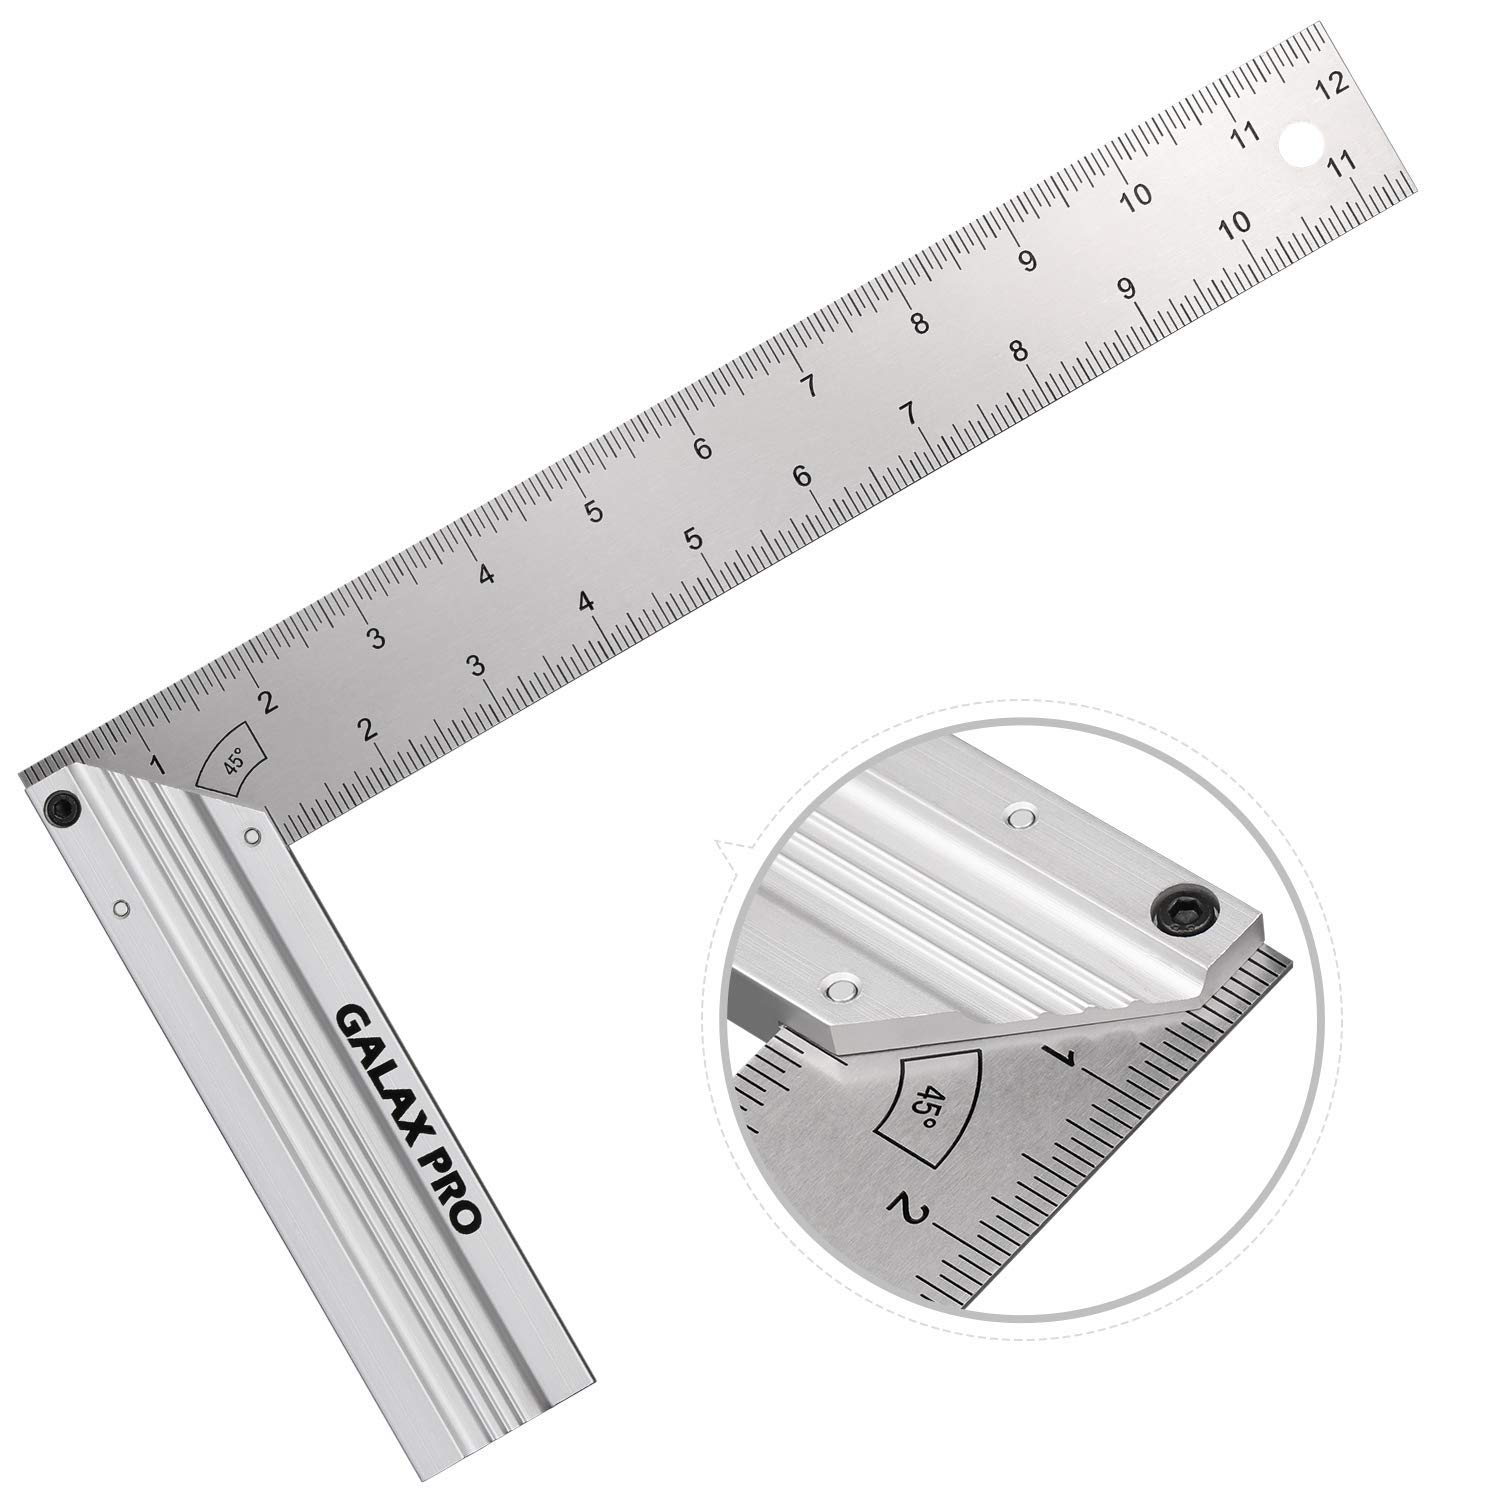 Level /& Measuring Layout Tool Aluminum Alloy Handle Ideal for Measuring Right Angle Green Level Bubble GALAX PRO 300MM L-Shaped Aluminum Try Square with Spirit Level Hanging Hole